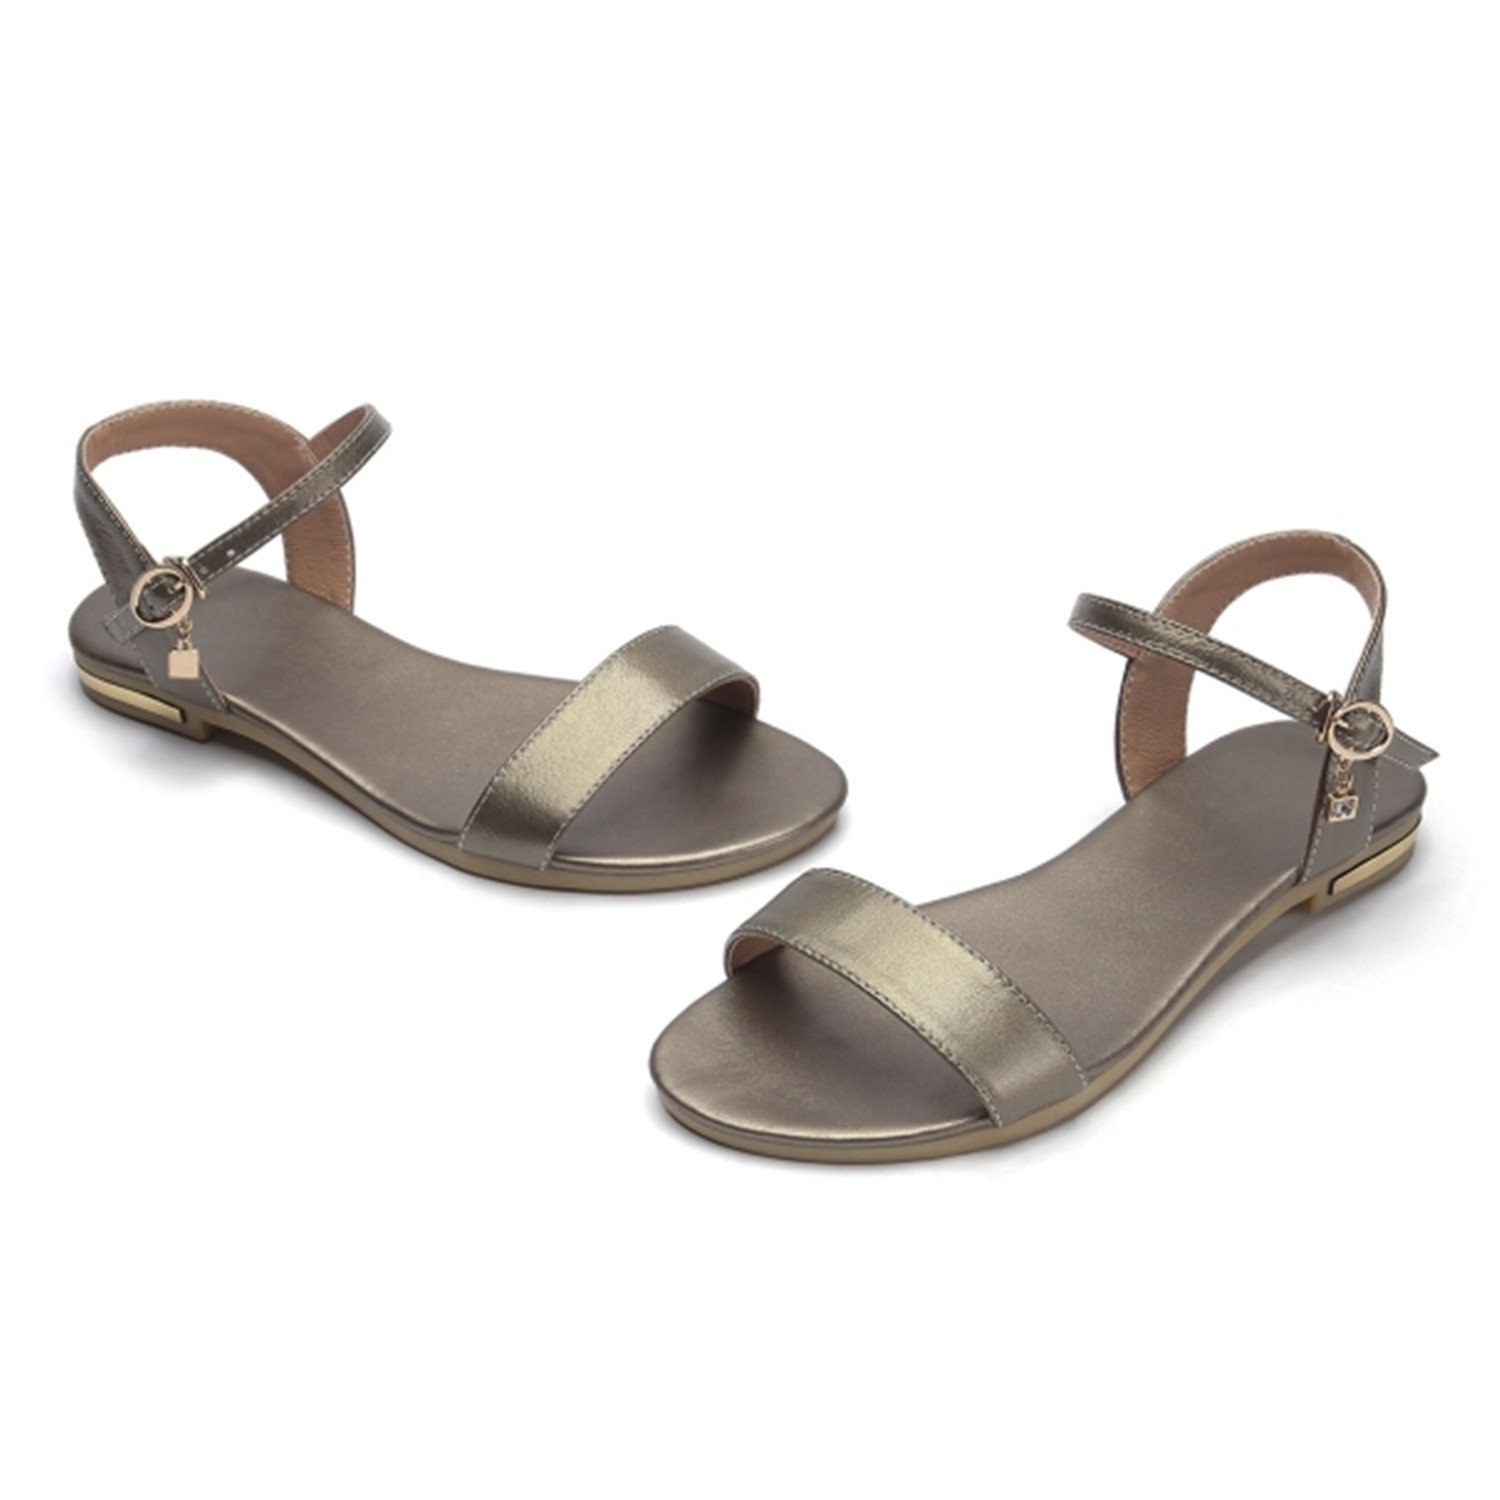 Women Sandals Genuine Leather Soft Rubber Sole Basic Buckle Strap Size 34-43 Women's Summer Shoes SS168 B07CVR1ZF2 6.5 B(M) US|Champagne